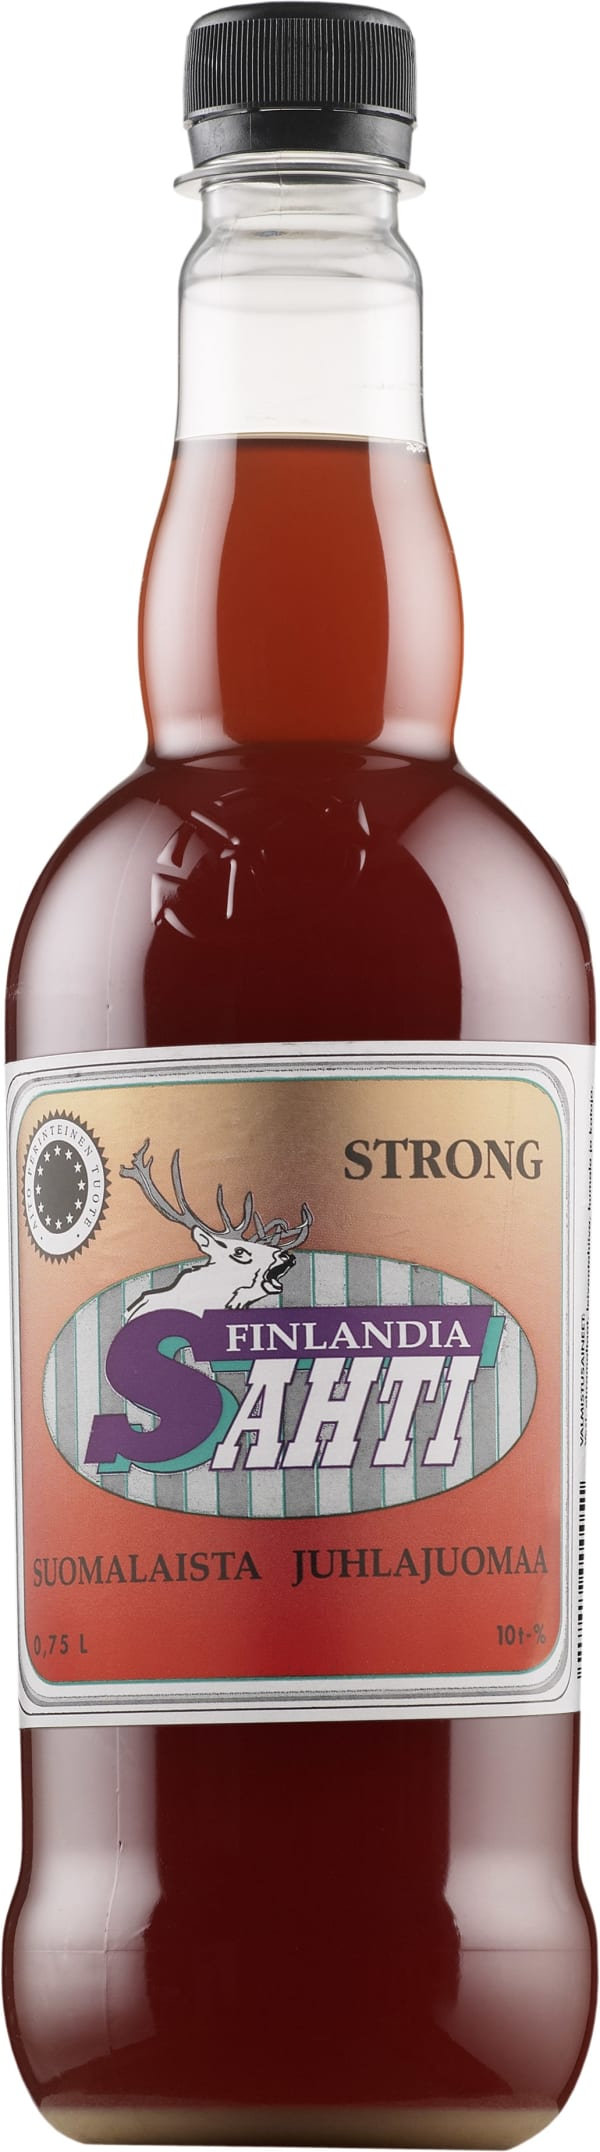 Finlandia Sahti Strong  plastic bottle